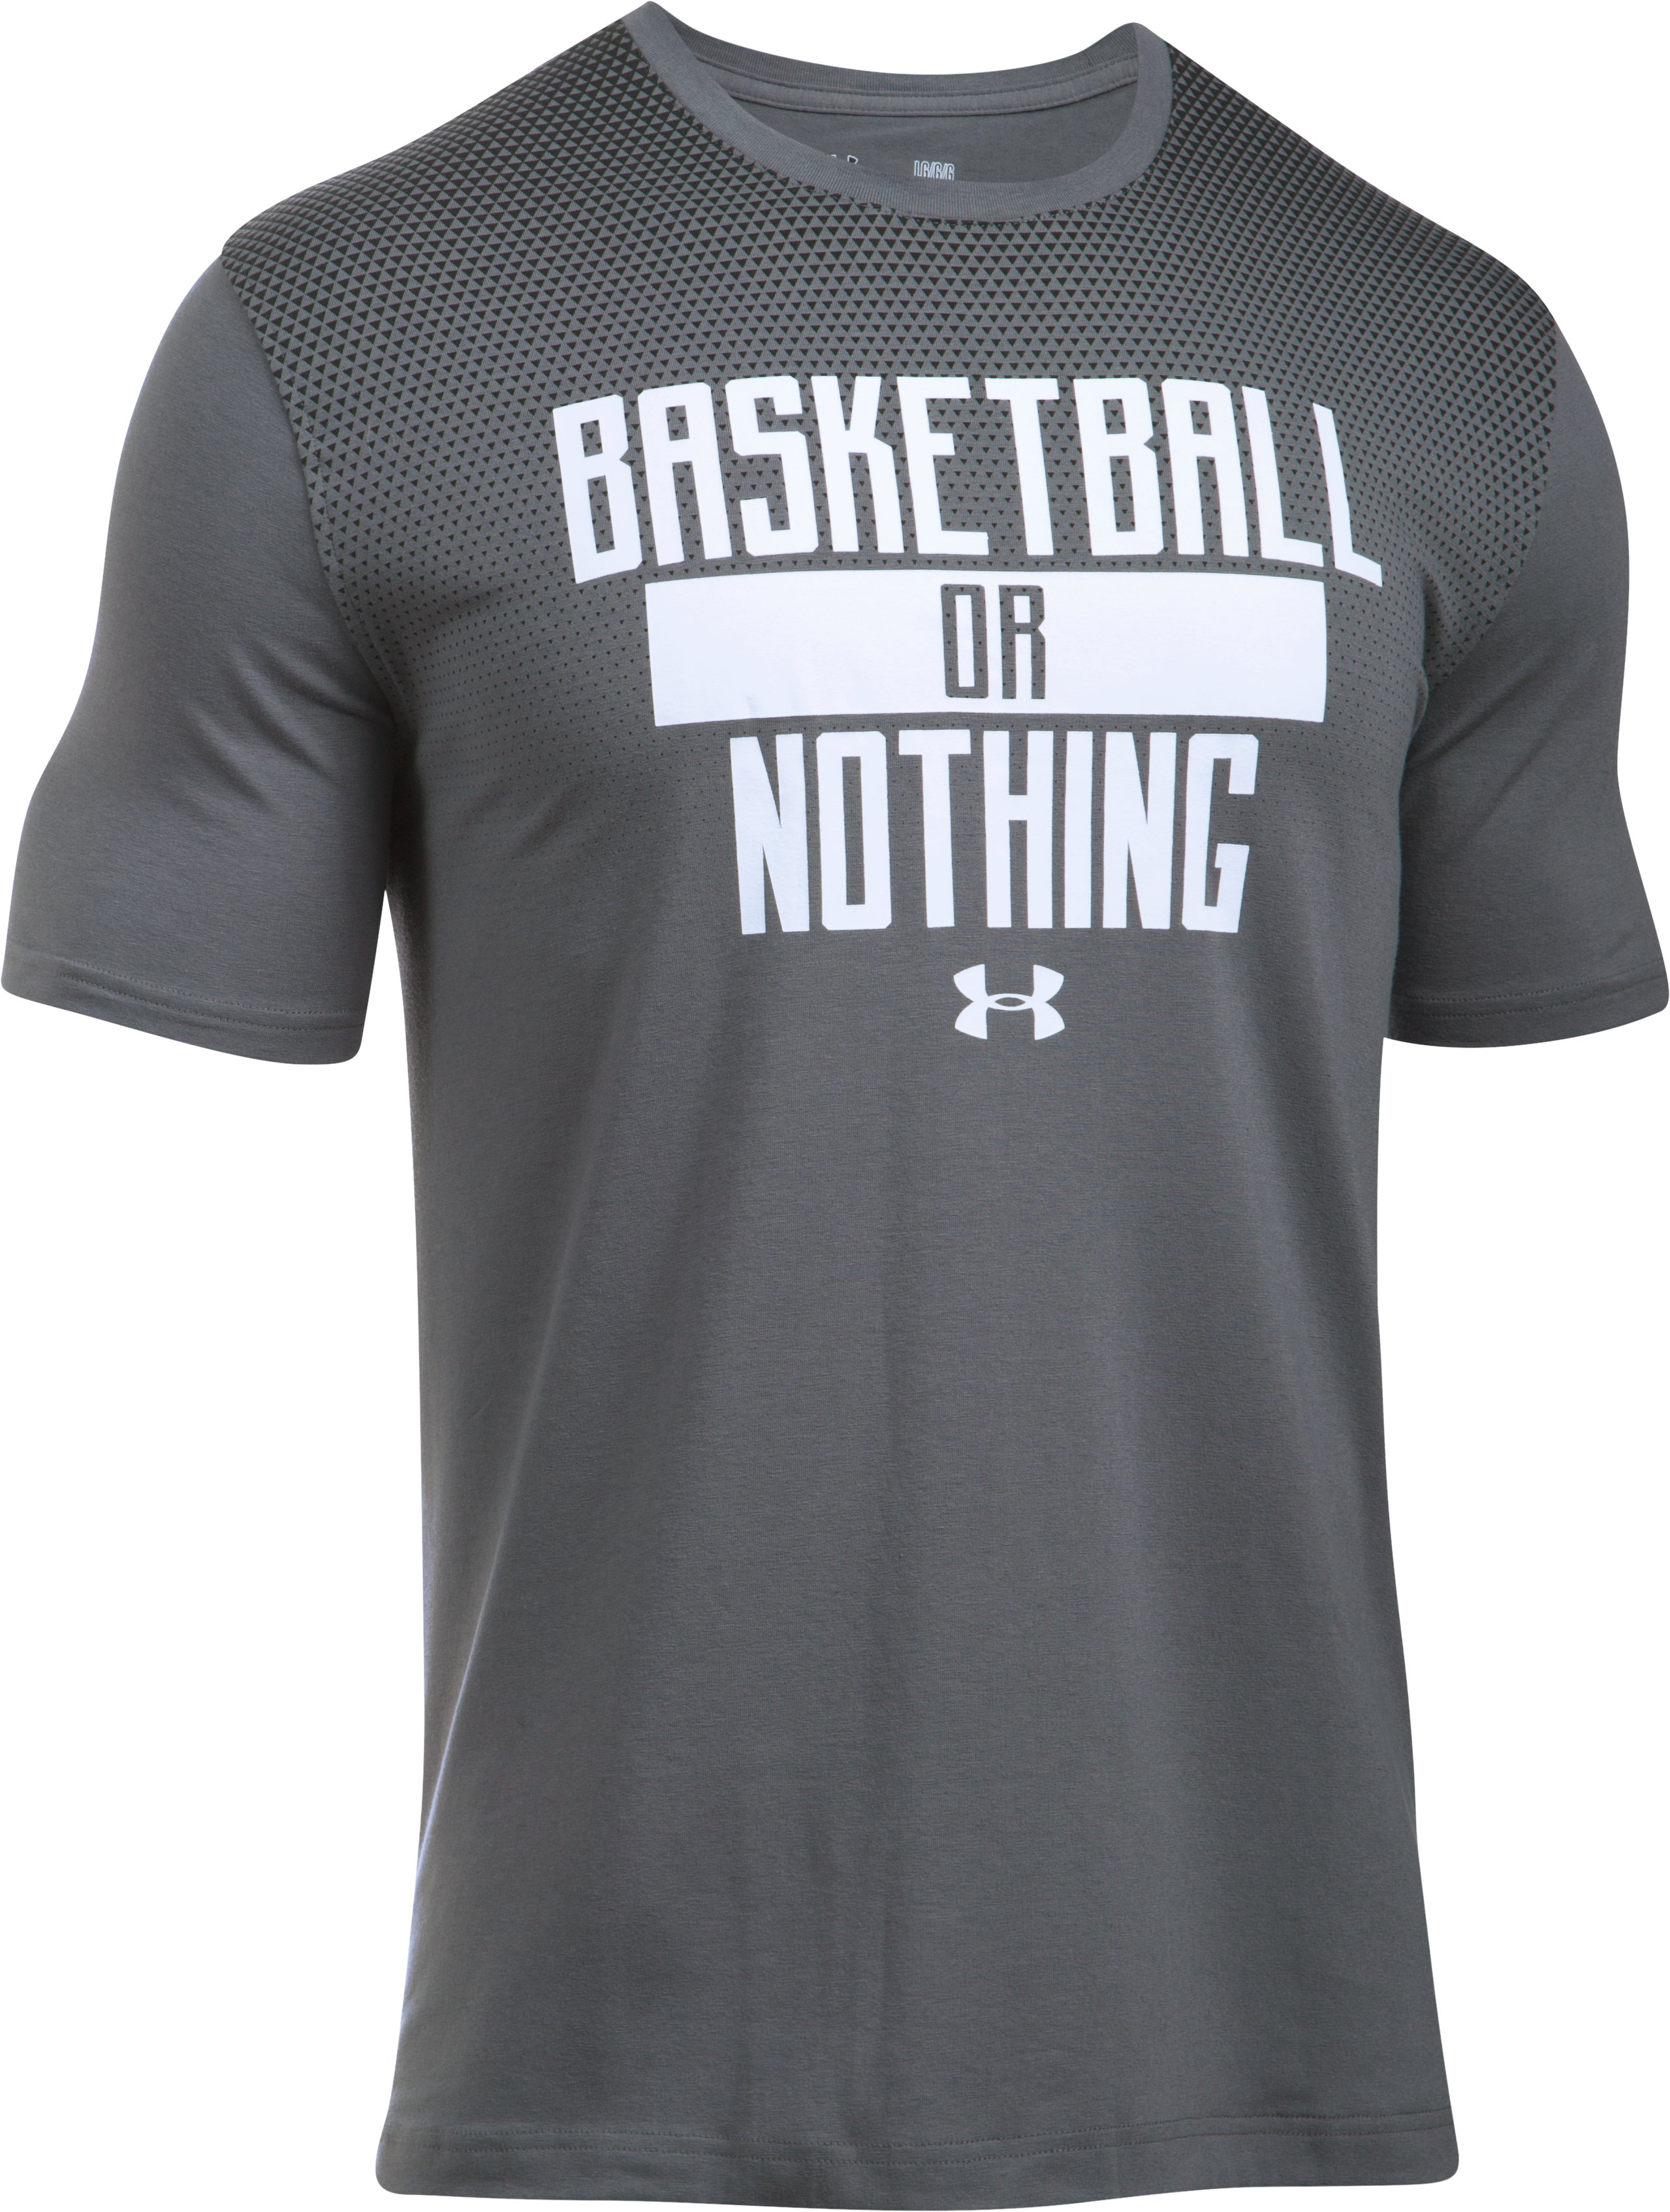 Men's UA Basketball or Nothing T-Shirt, Graphite